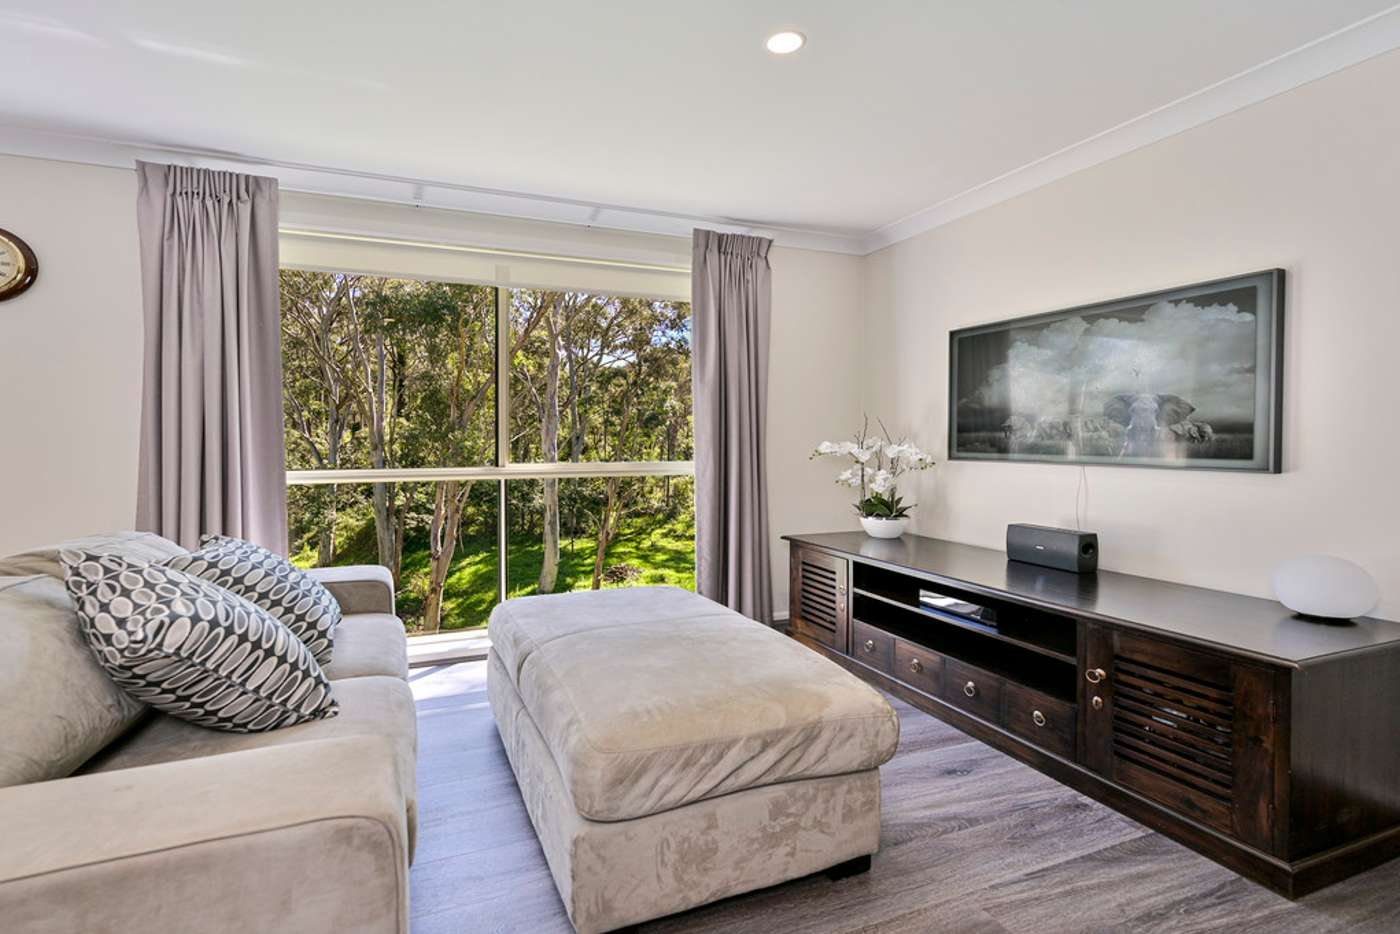 Sixth view of Homely house listing, 1a Stuart Place, Tahmoor NSW 2573